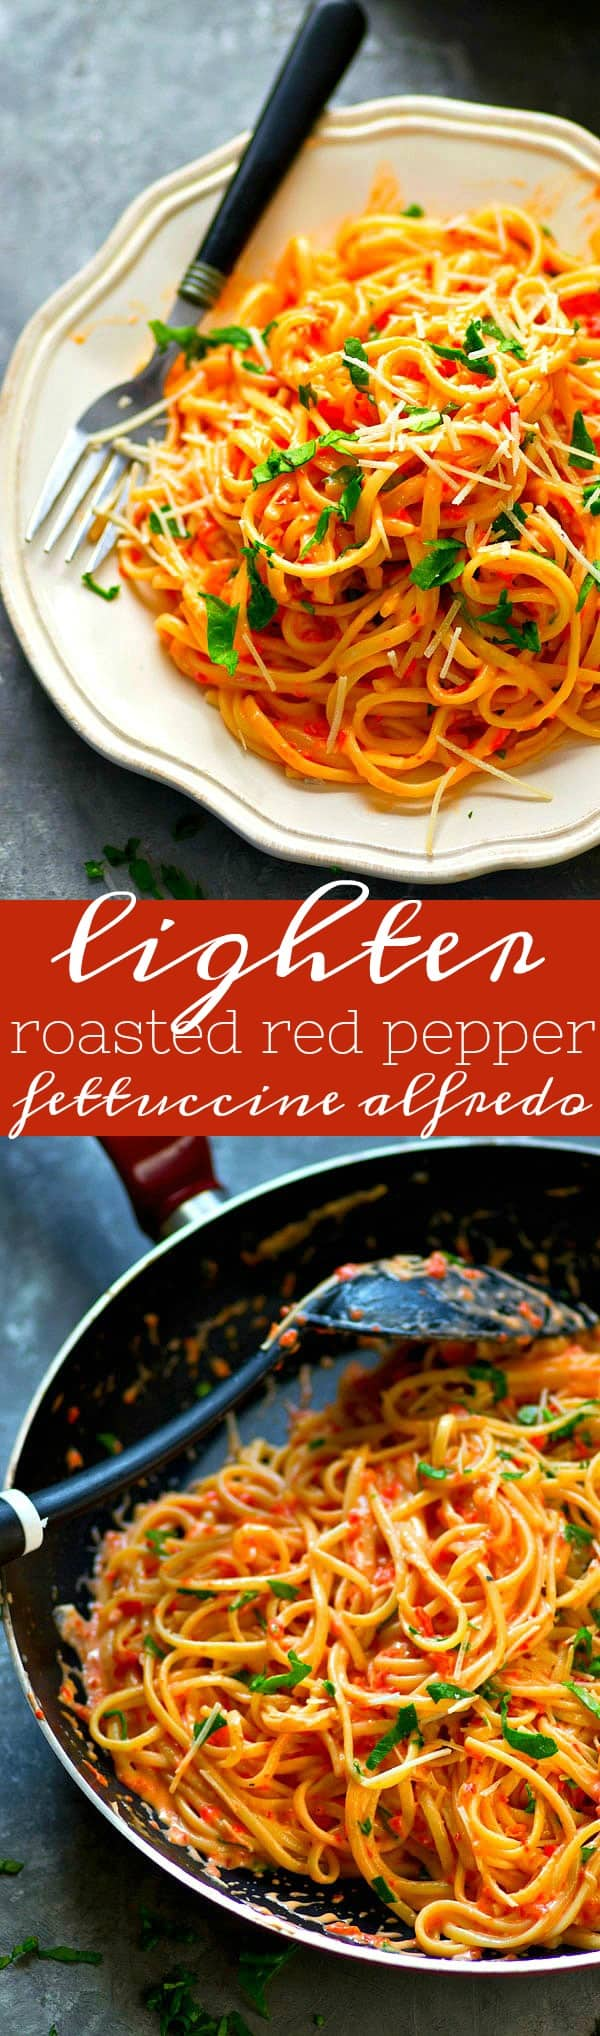 Flavorful roasted red peppers transform the sauce for this LIGHTER roasted red pepper fettuccine alfredo. Super creamy and you won't feel guilty going back for seconds!